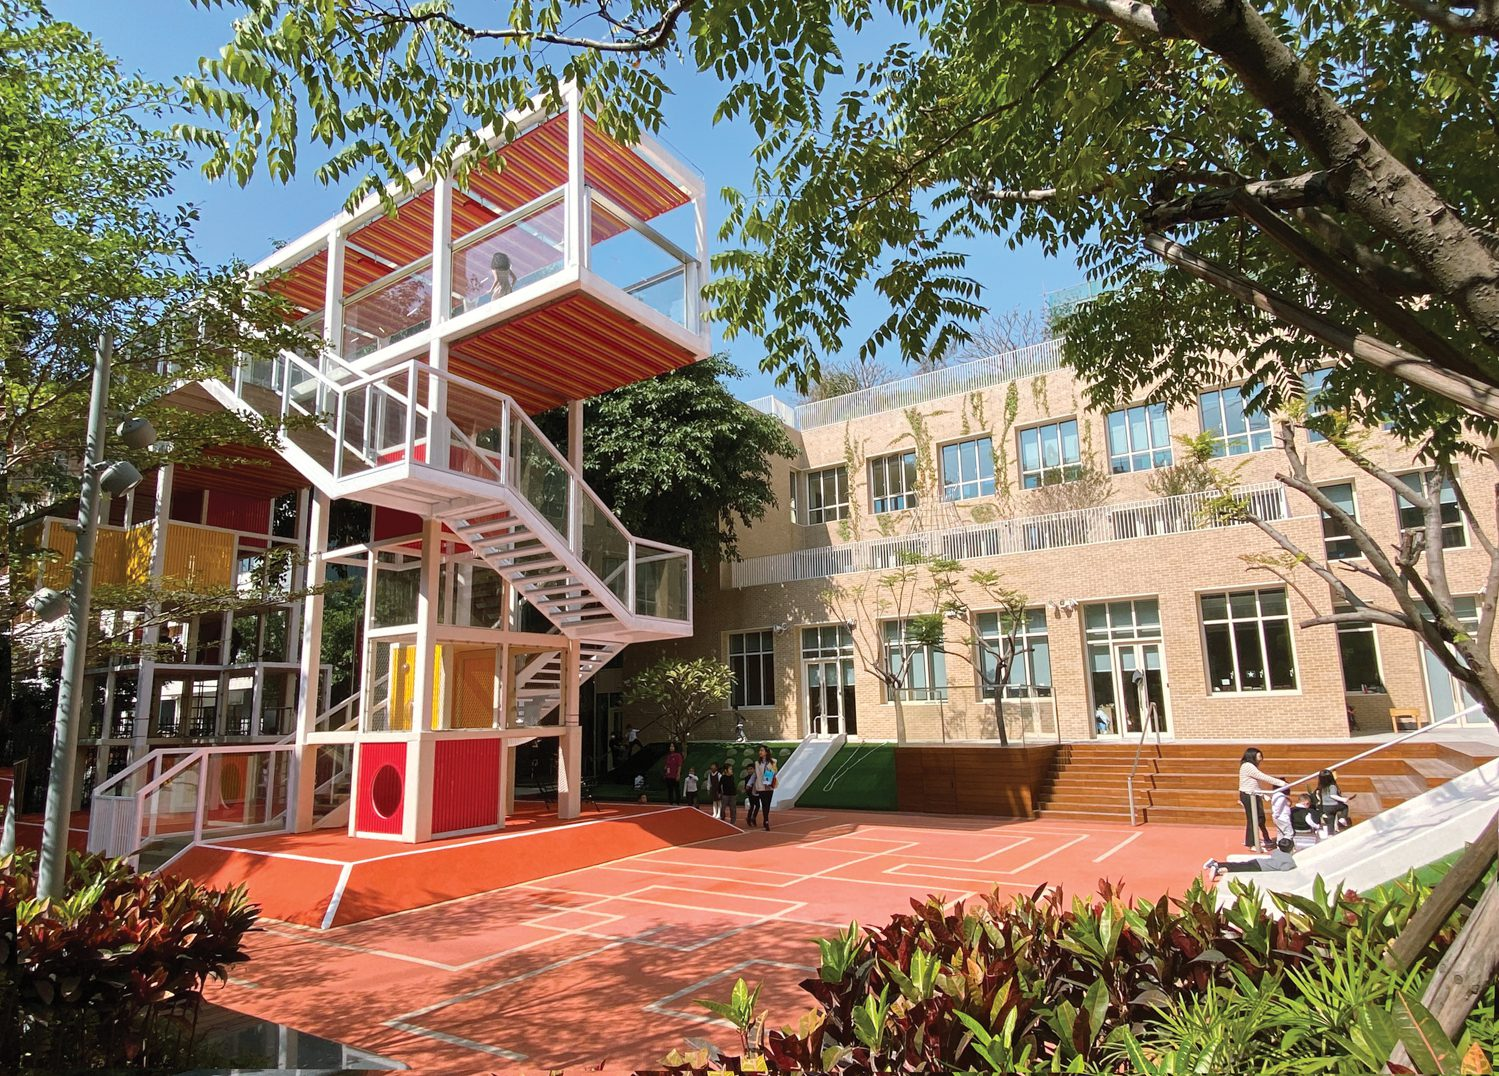 Exterior of school with a red exposed stairwell.